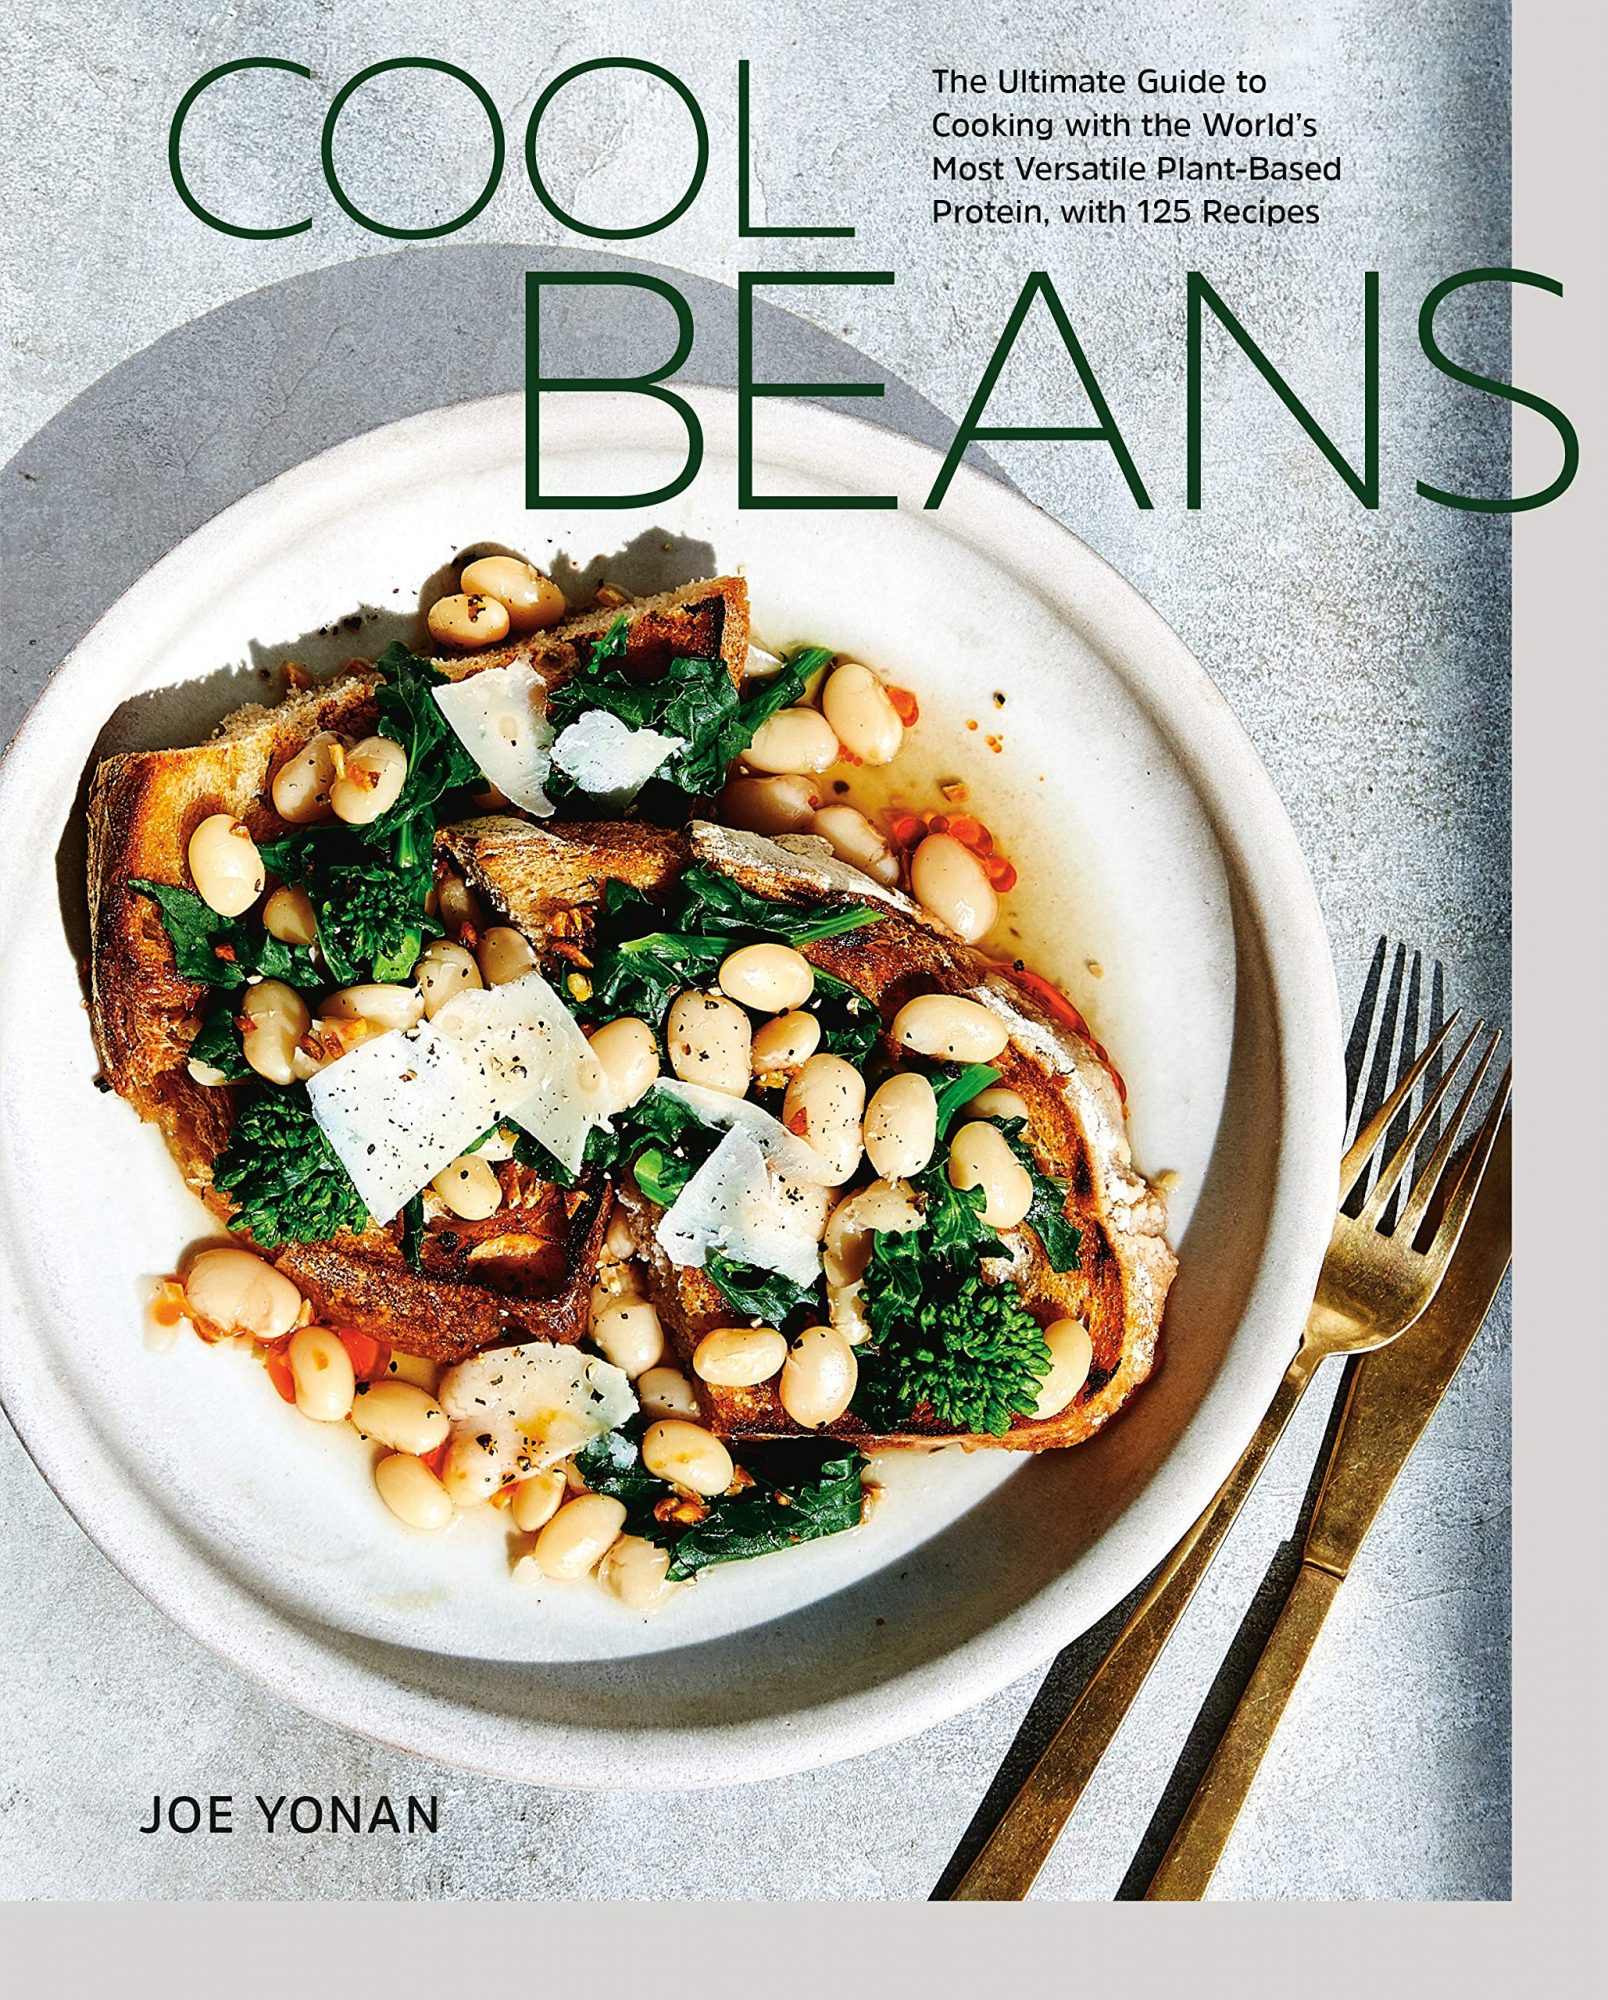 book cover for Cool Beans: The Ultimate Guide to Cooking with the World's Most Versatile Plant-Based Protein, with 125 Recipes